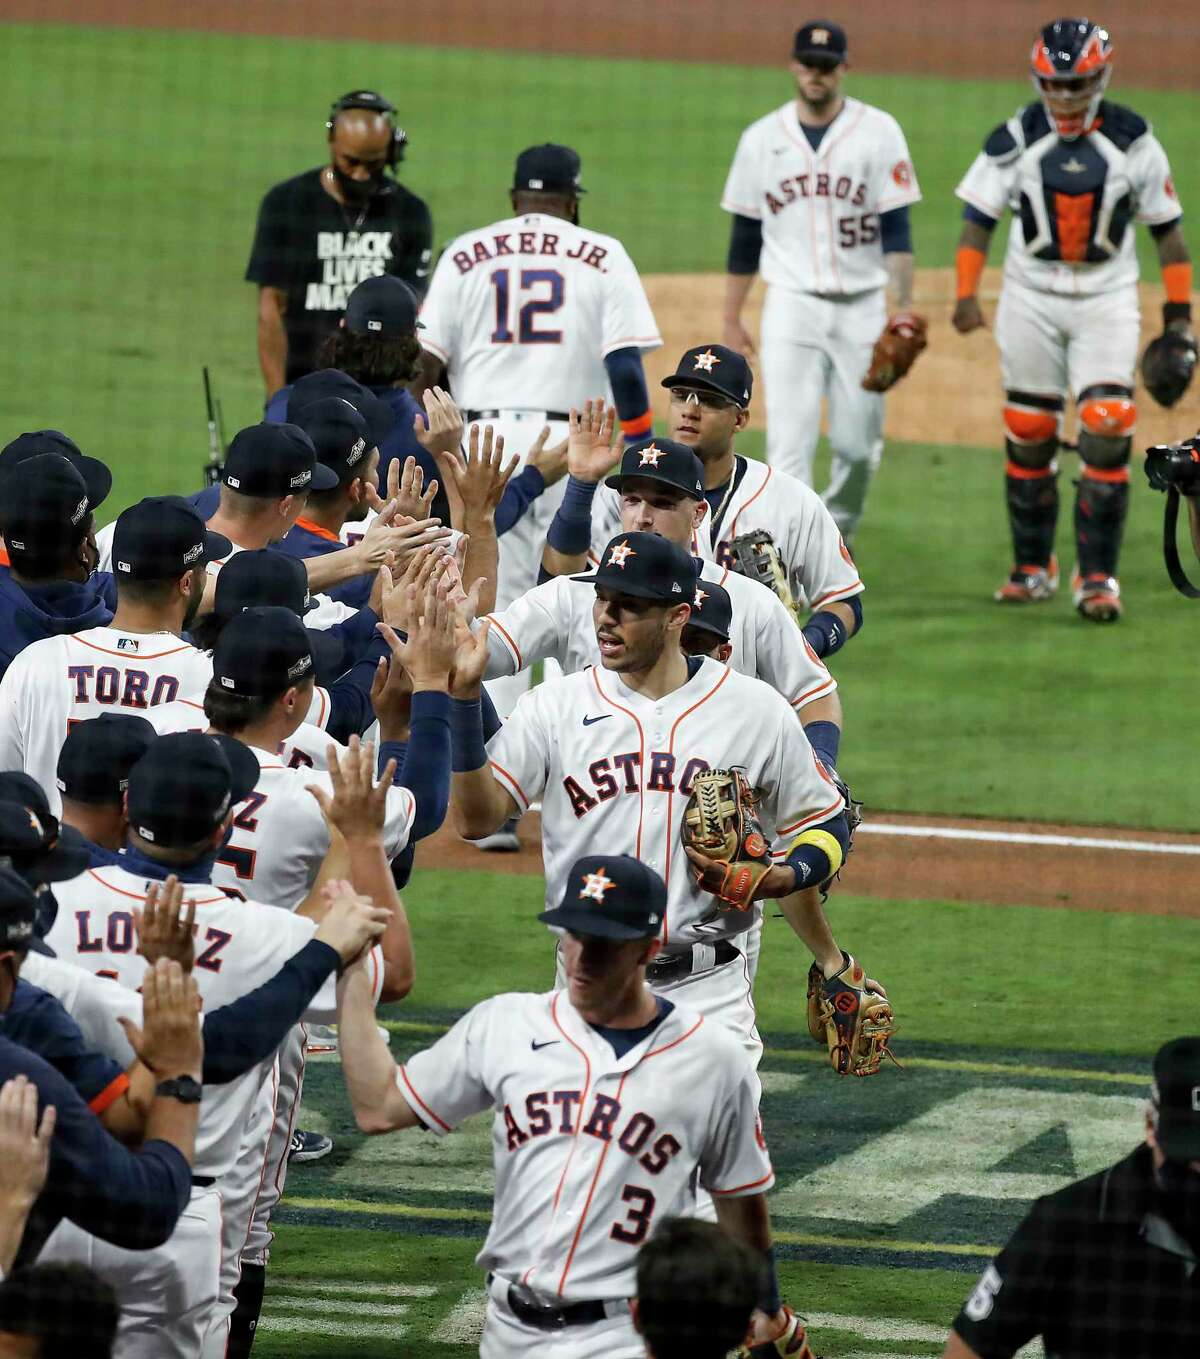 Houston Astros players high five after the Astros beat the Tampa Bay Rays 4-3 to stay alive in the American League Championship Series at Petco Park Wednesday, Oct. 14, 2020, in San Diego. The Rays lead the best-of-seven series 3-1.